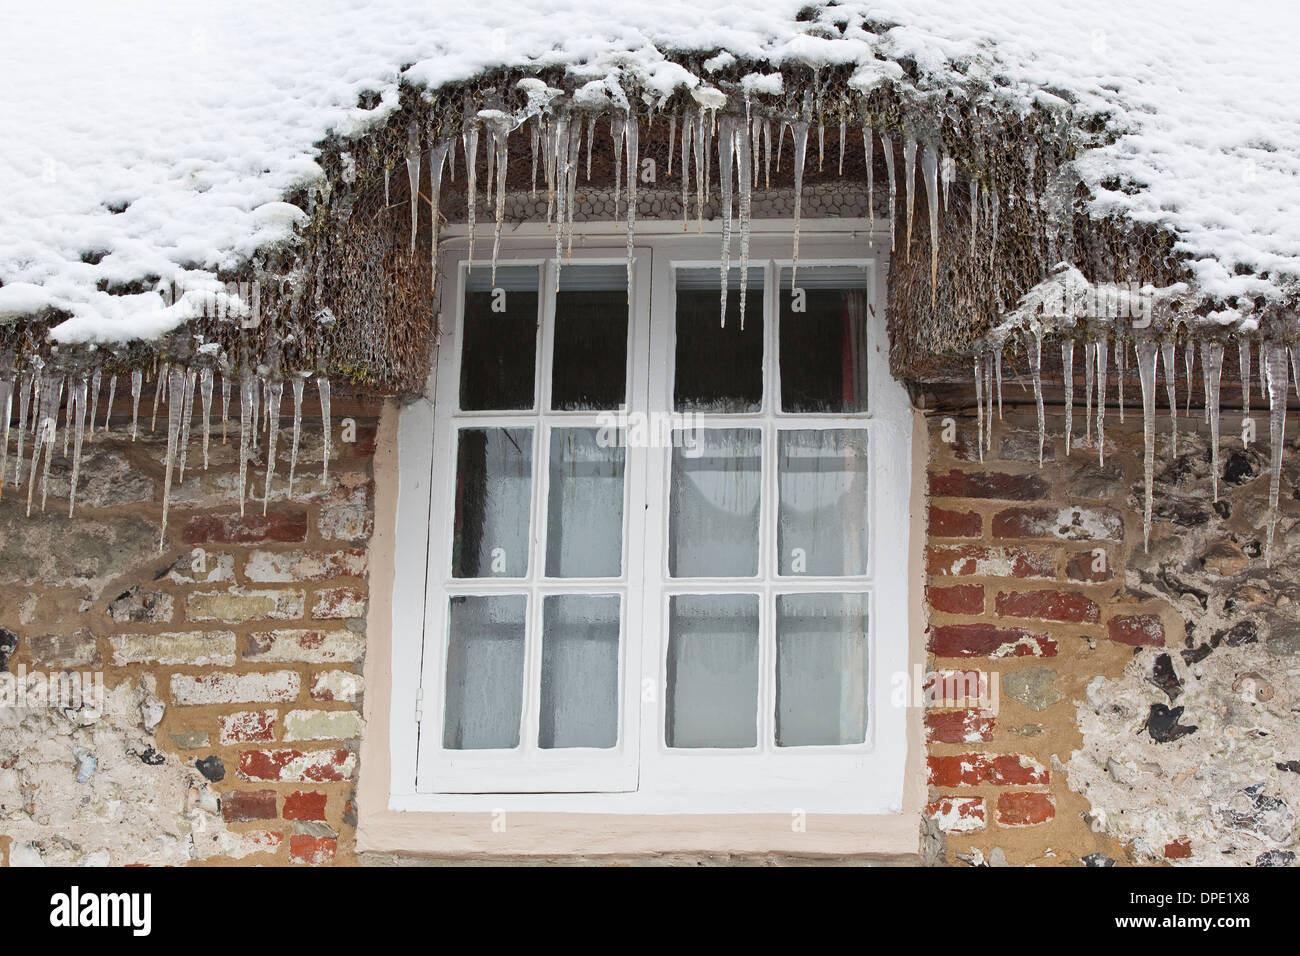 A Row Of Icicles Hanging From Thatched Roof Around Window On Cottage